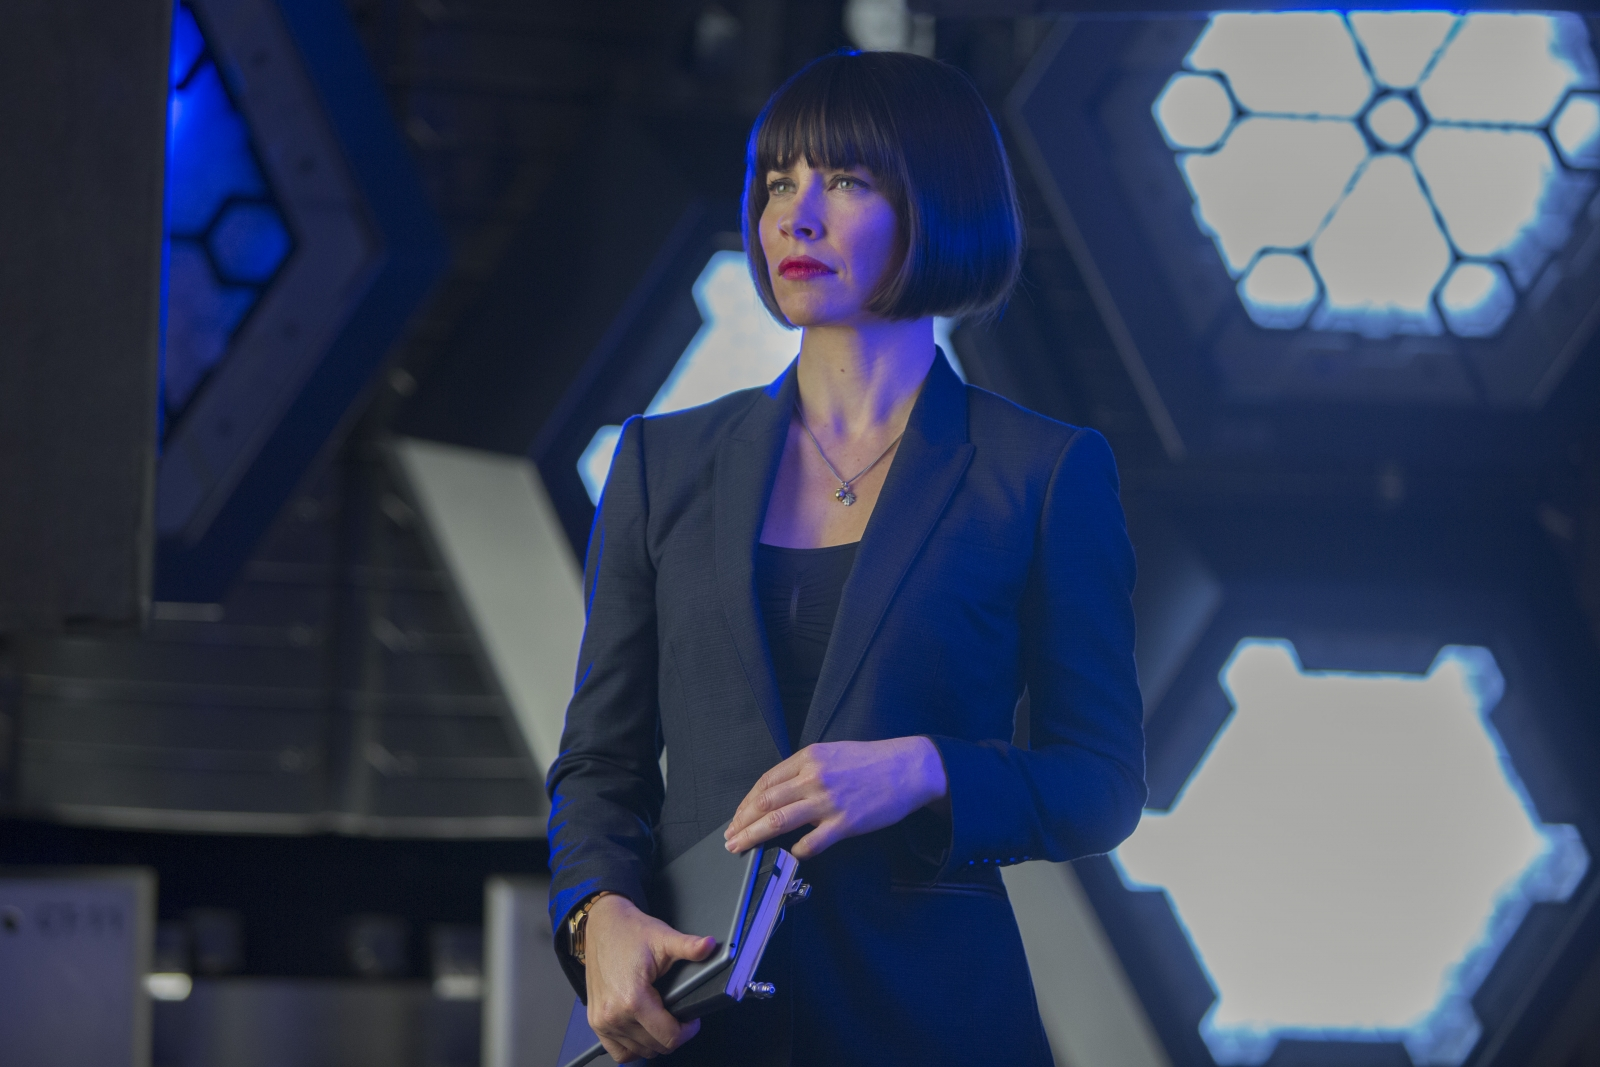 Evangeline Lilly in Ant-Man